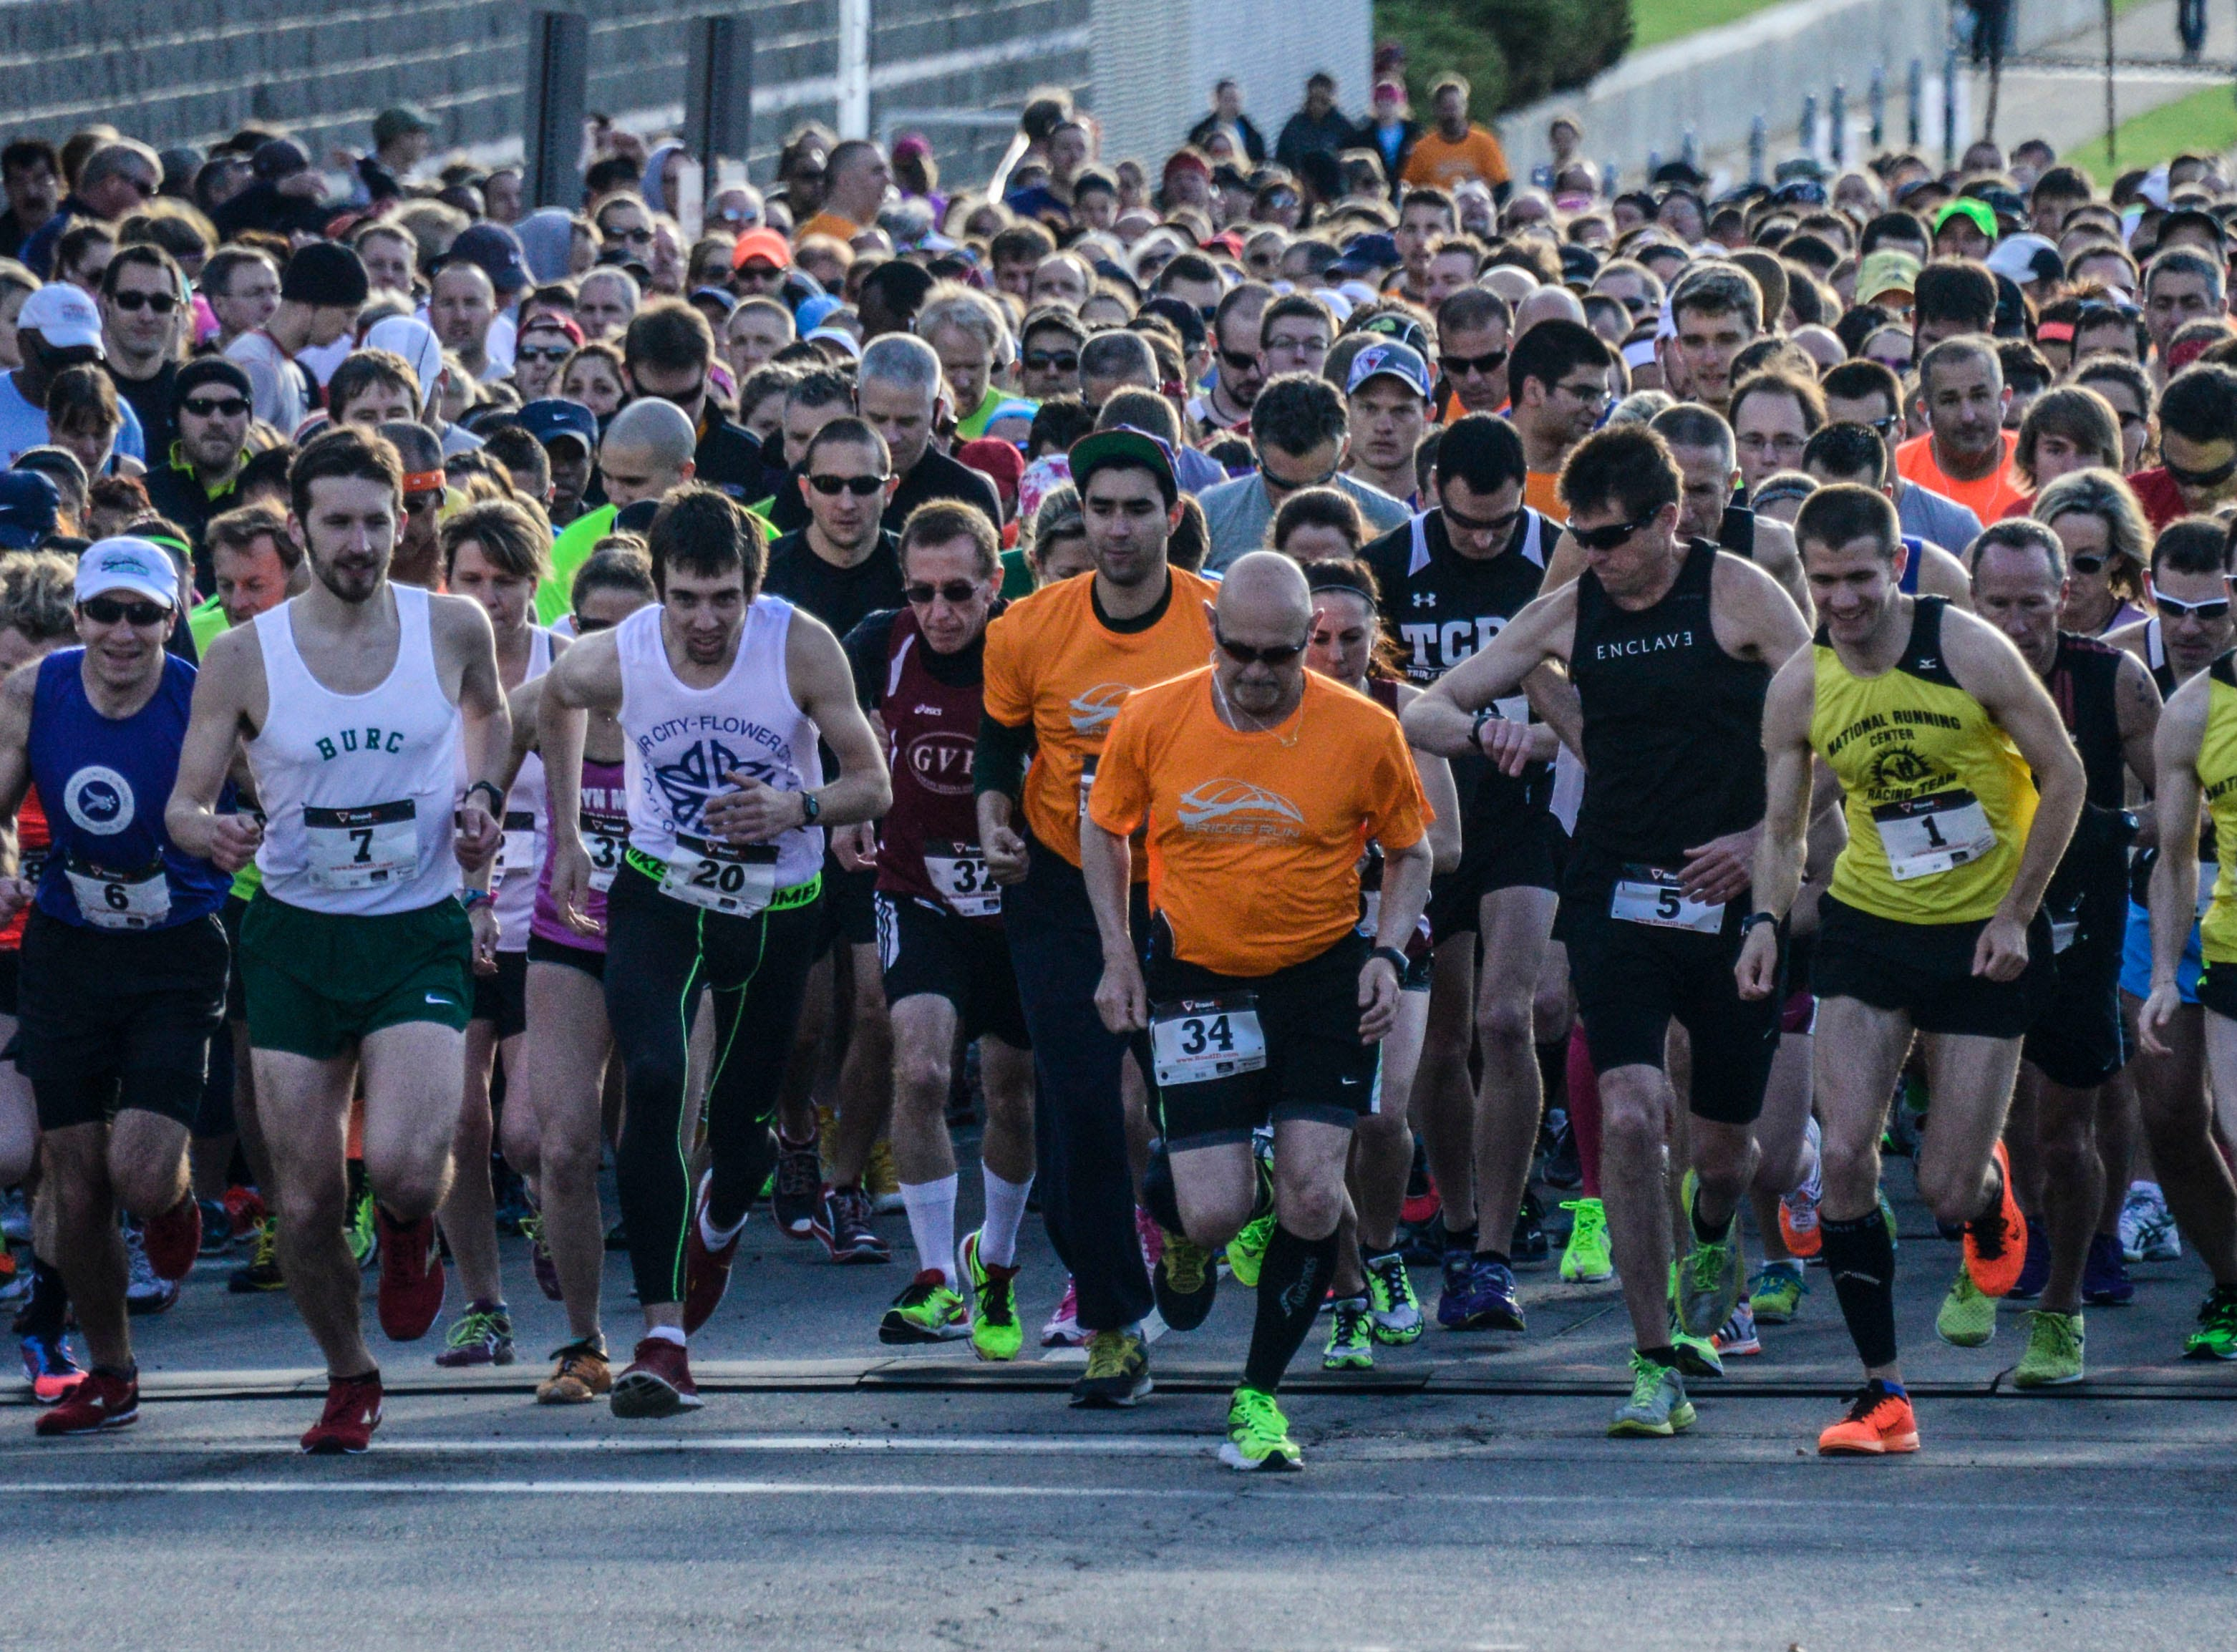 2014: Runners compete in the fourth annual Greater Binghamton Bridge Run on Sunday, May 4.